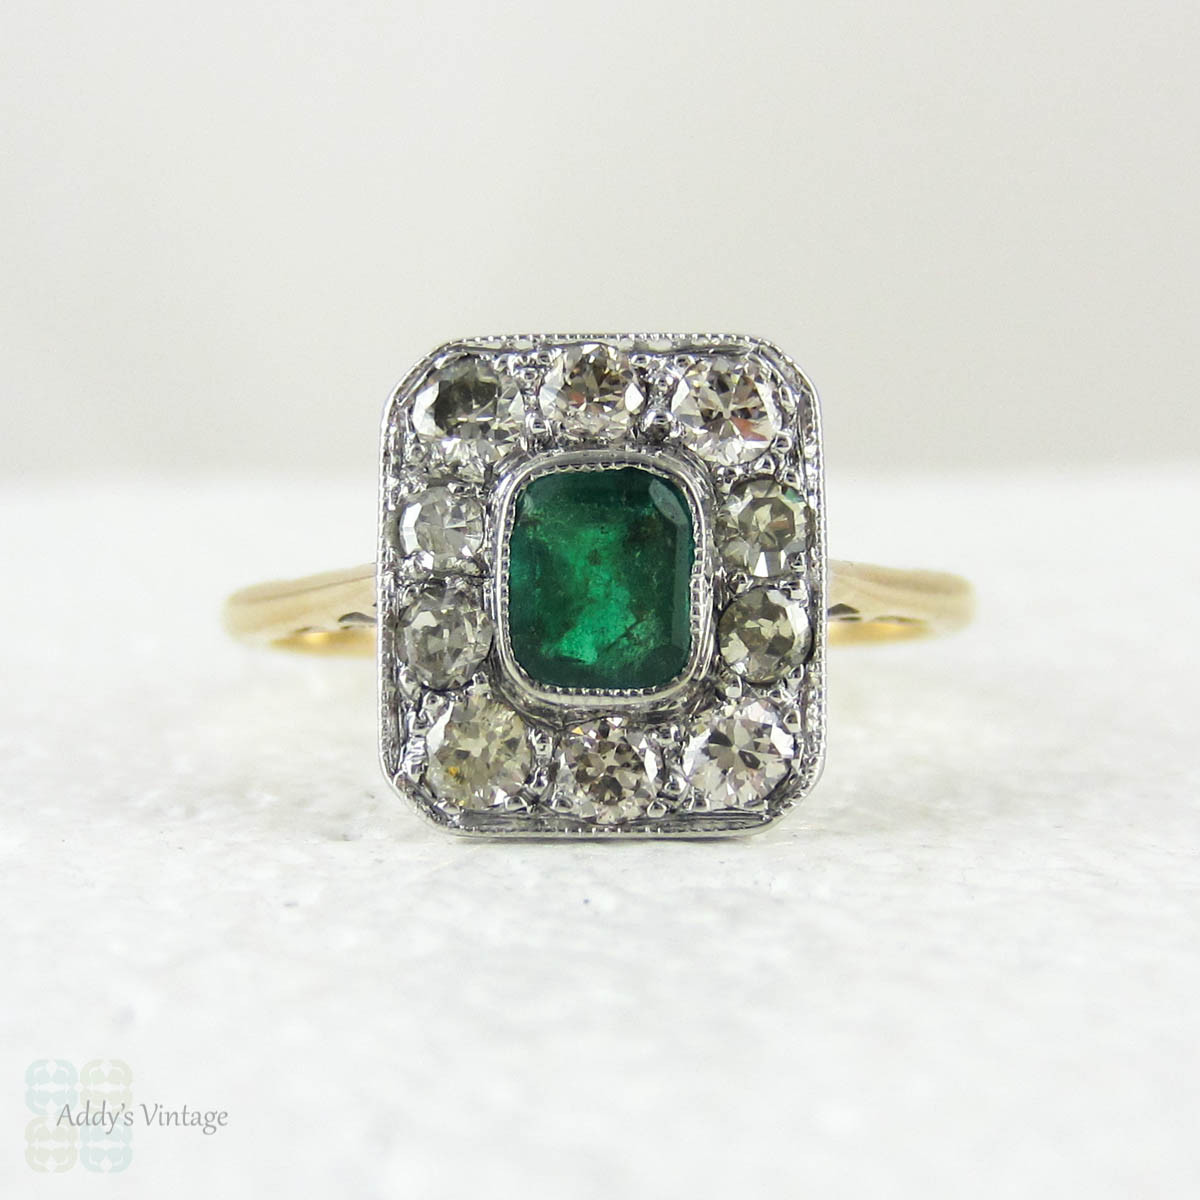 Emerald Engagement Ring With Old European Cut Diamond Halo